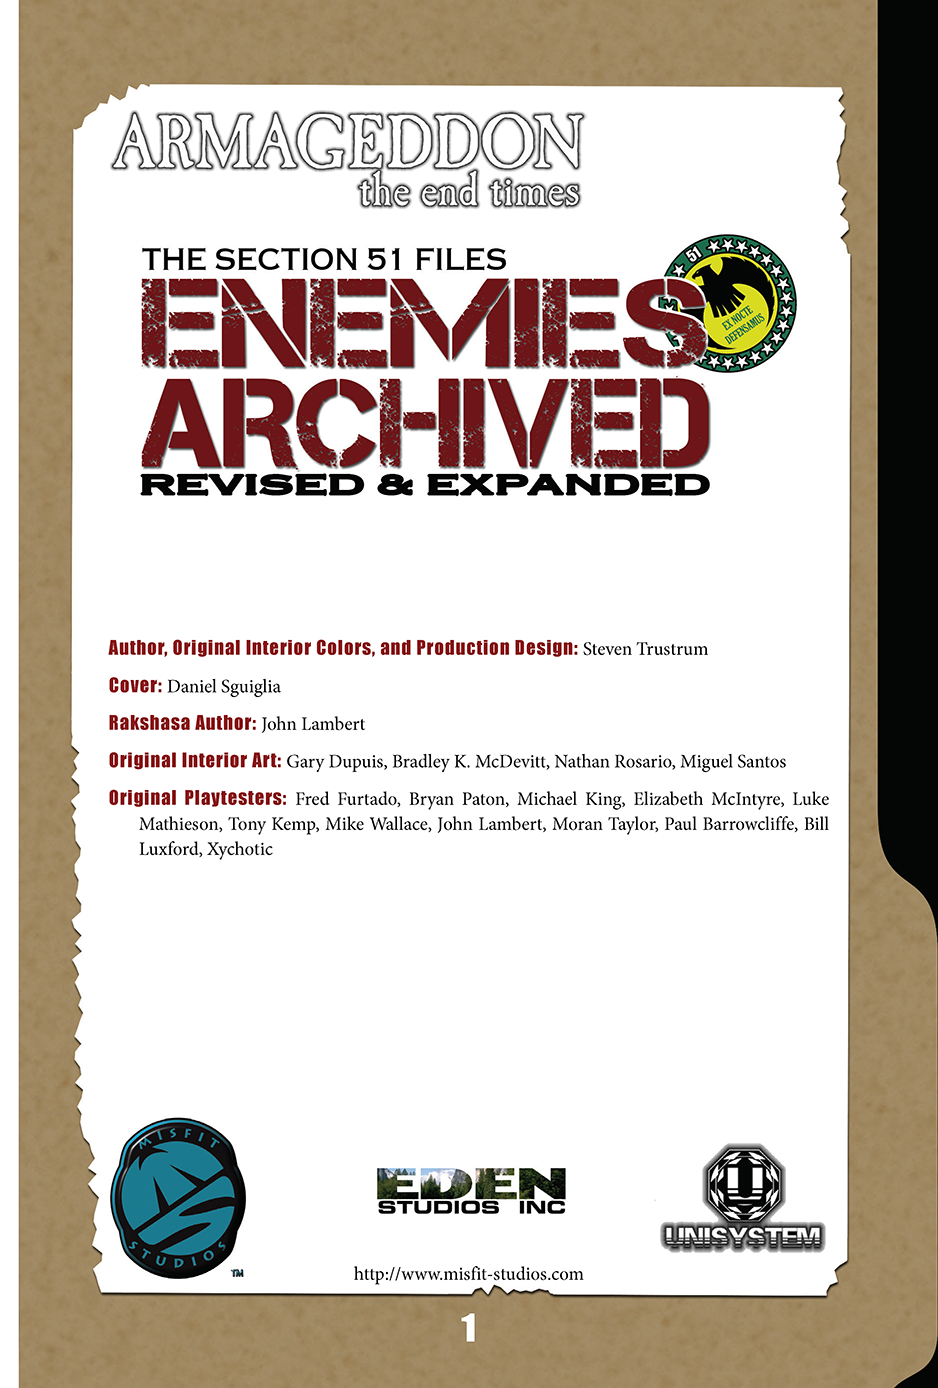 Armageddon: Enemies Archived, Revised & Expanded